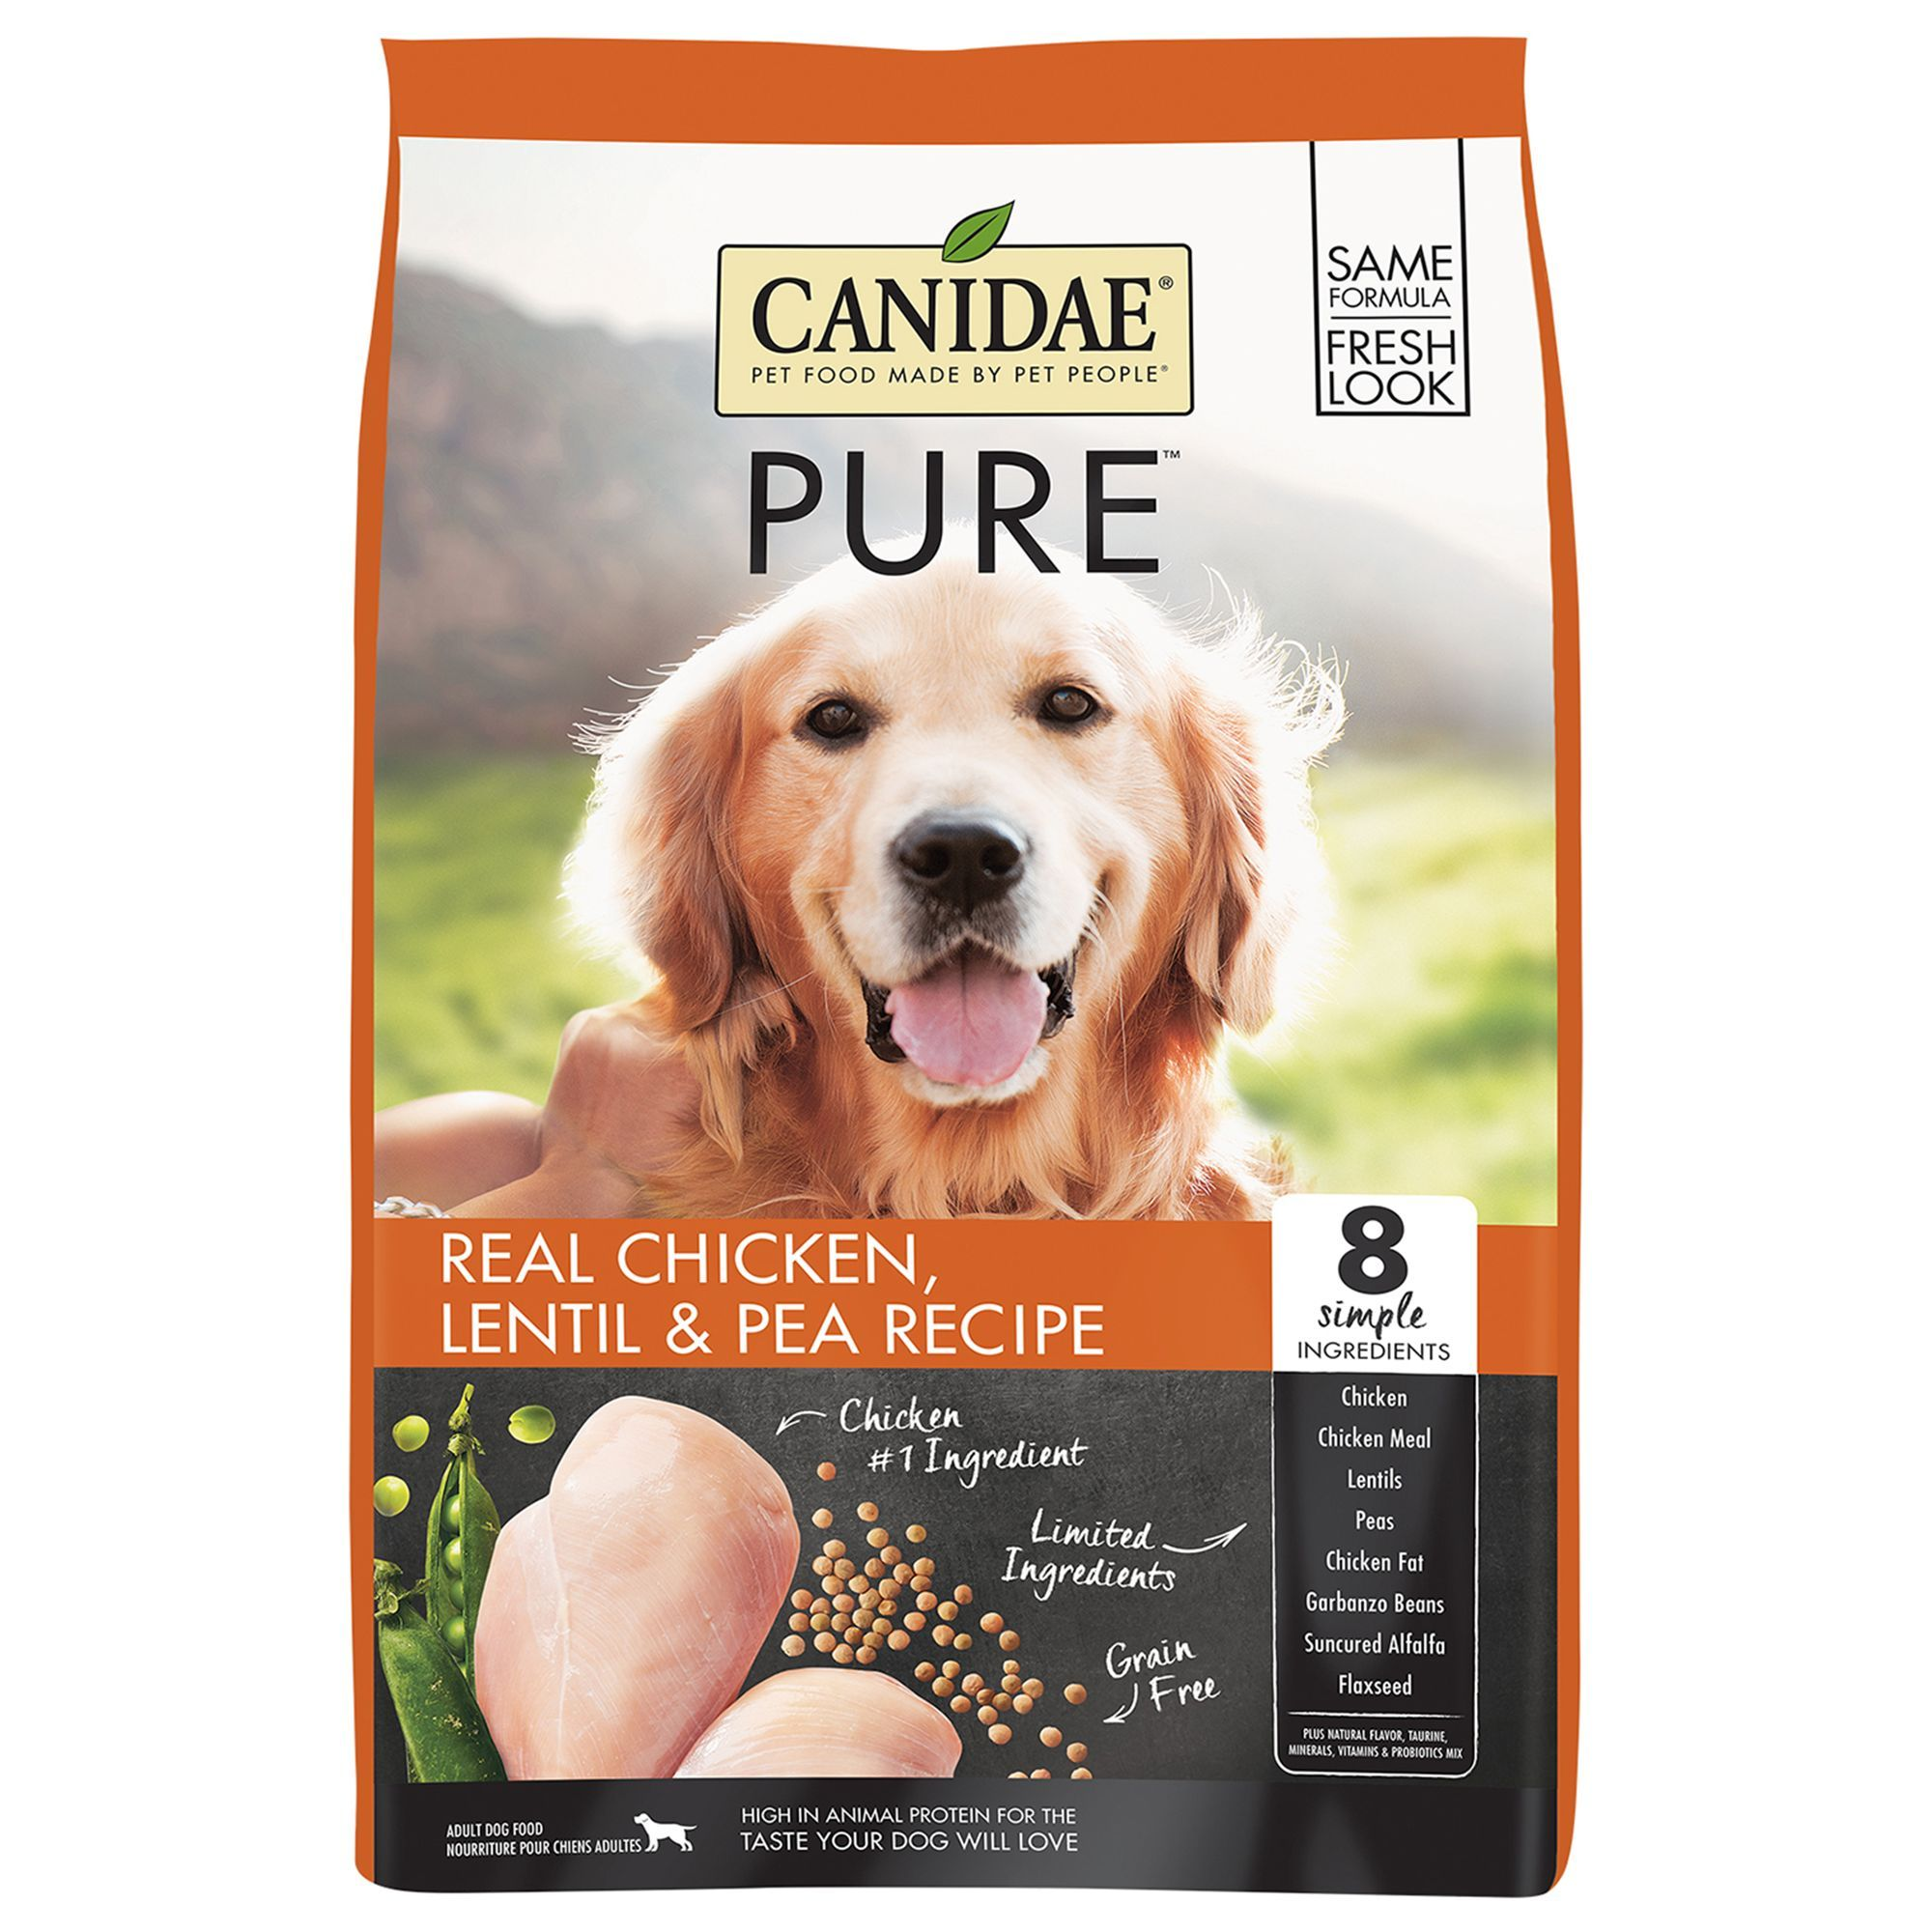 Canidae pure dog food limited ingredient natural grain